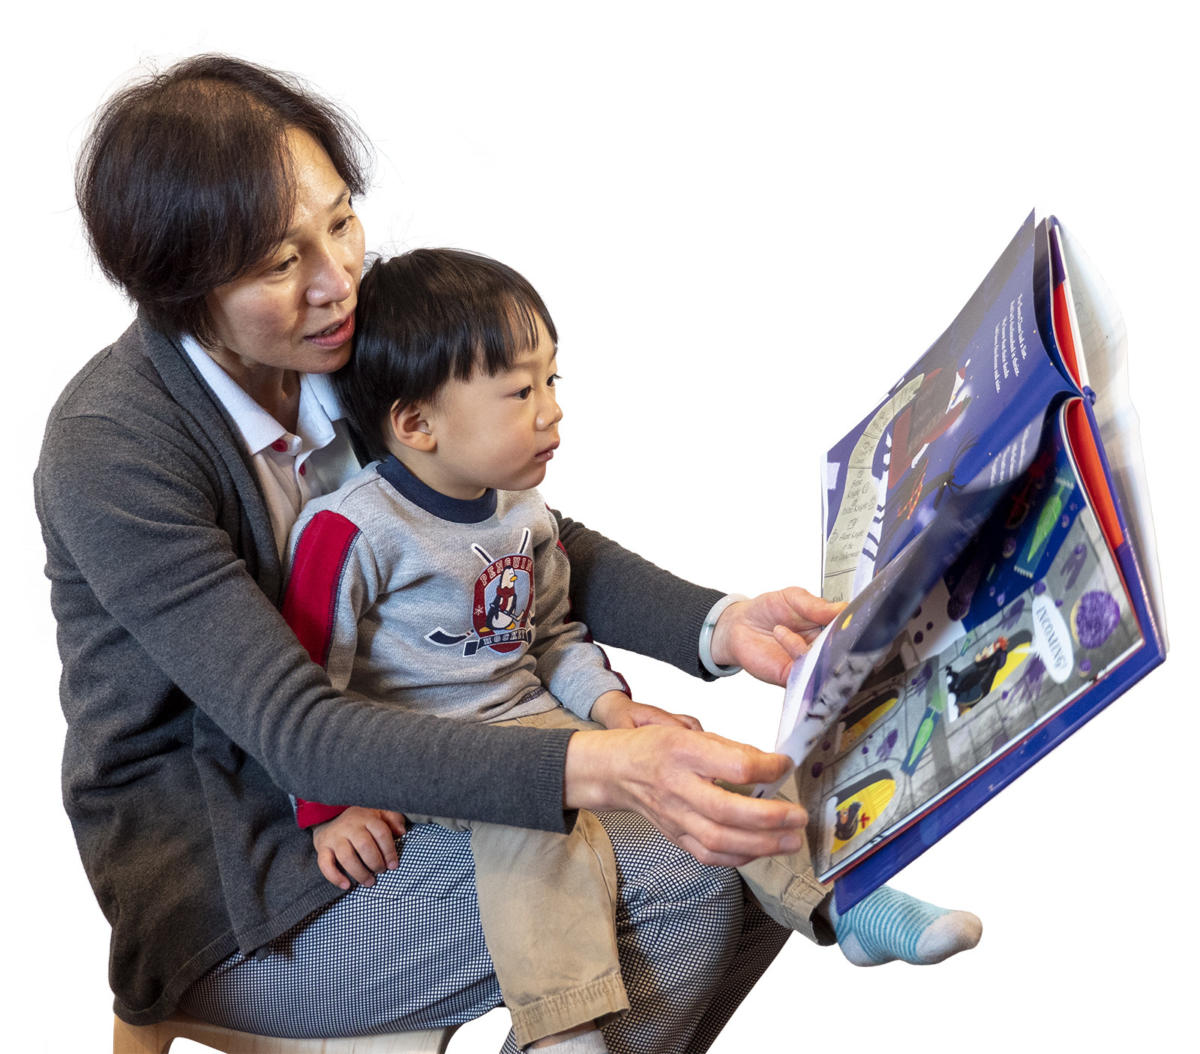 Provider reading stories child